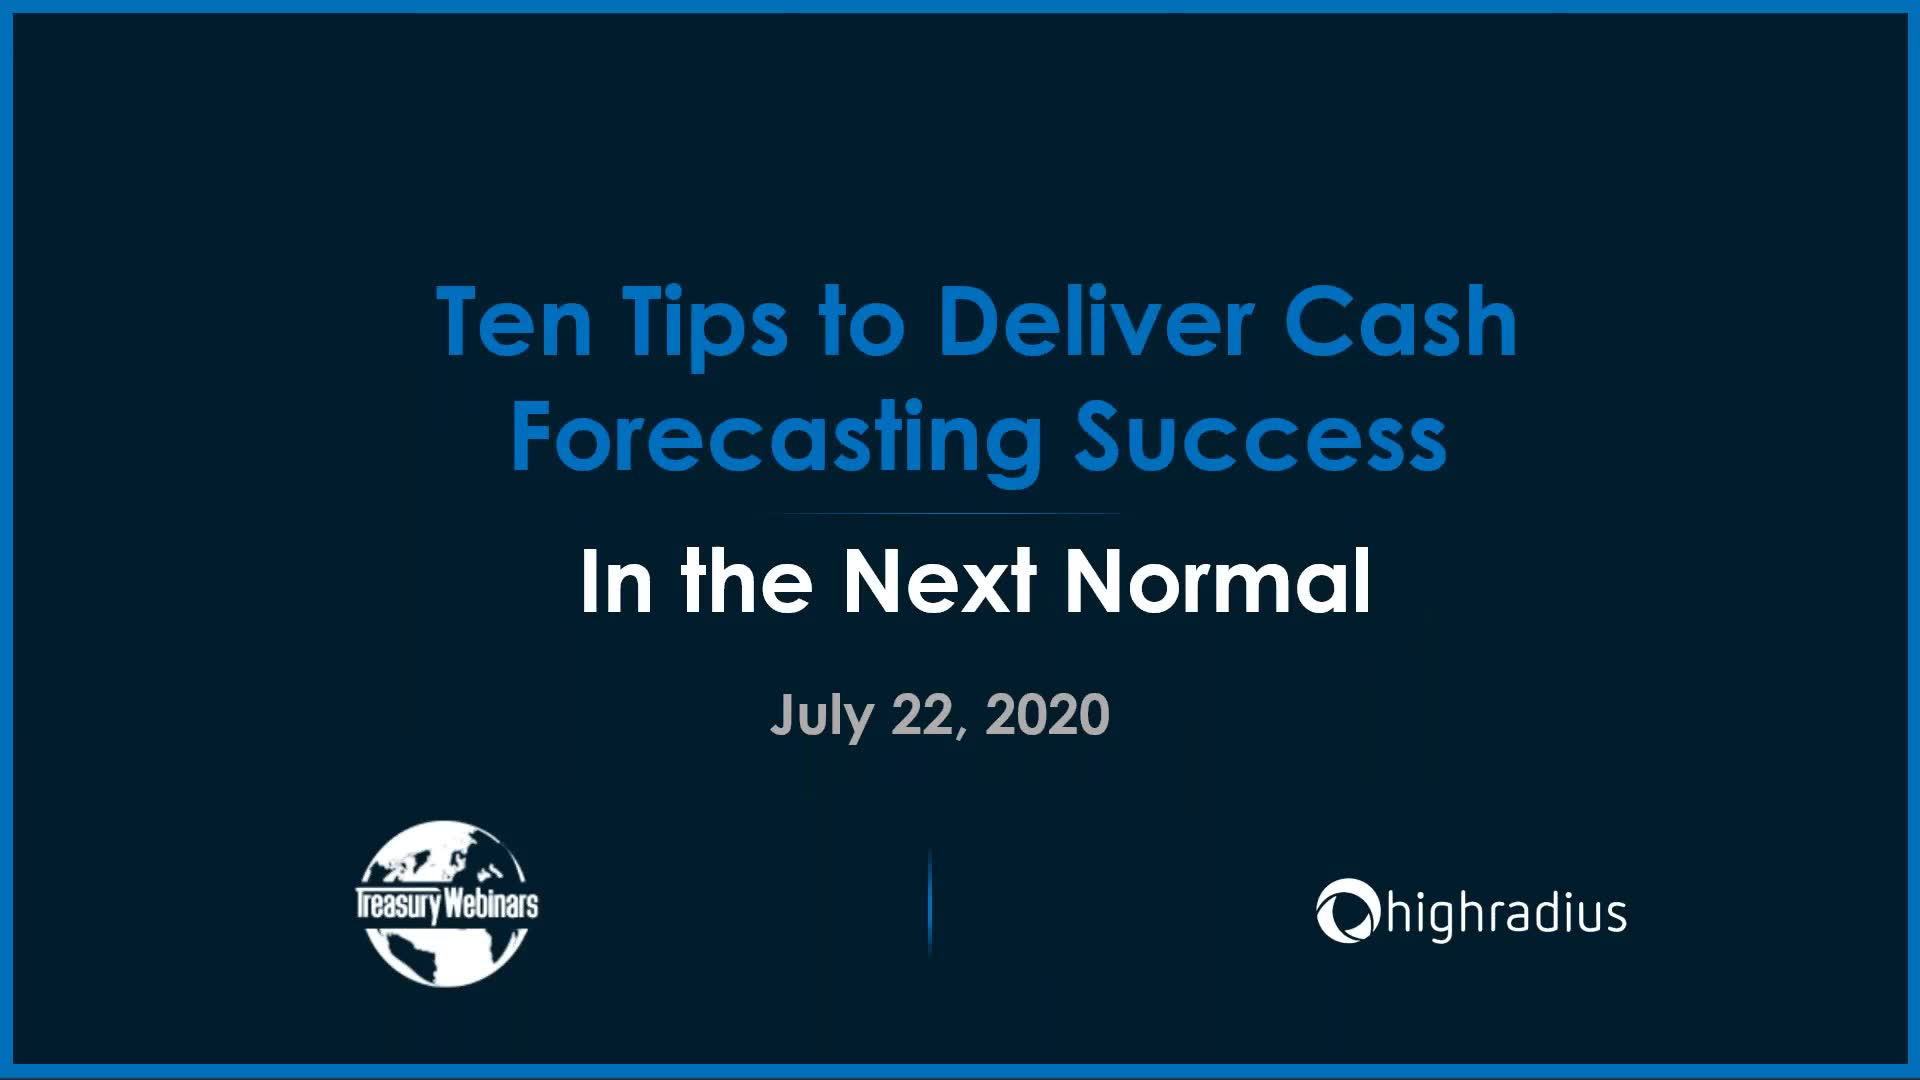 Ten Tips to Deliver Cash Forecasting Success in the Next Normal